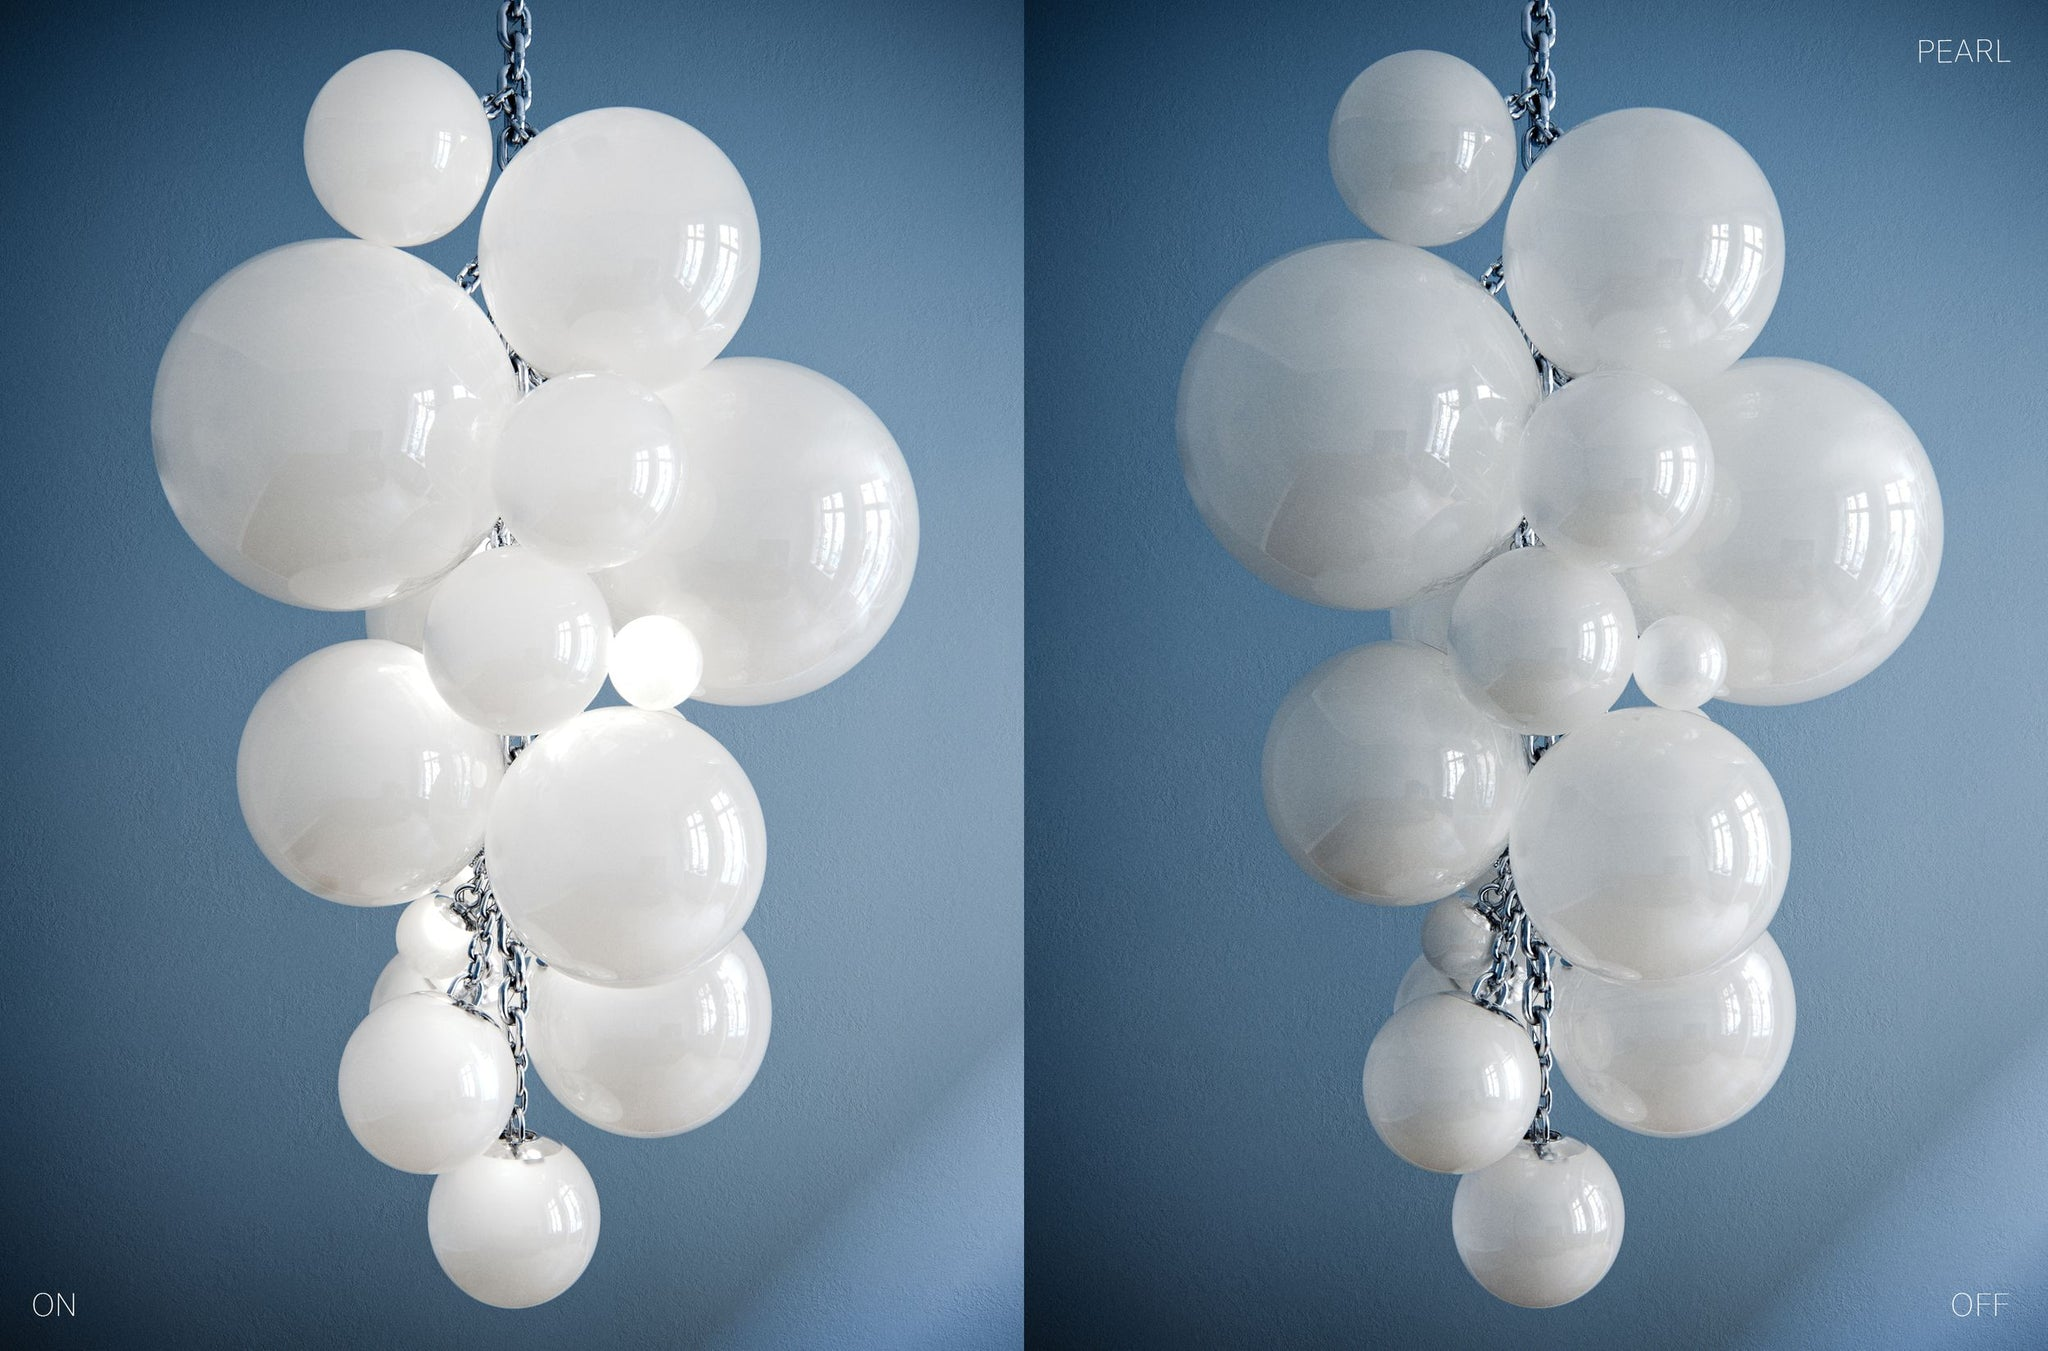 Kuulas Glass Chandelier By Cameron Design House in Pearl